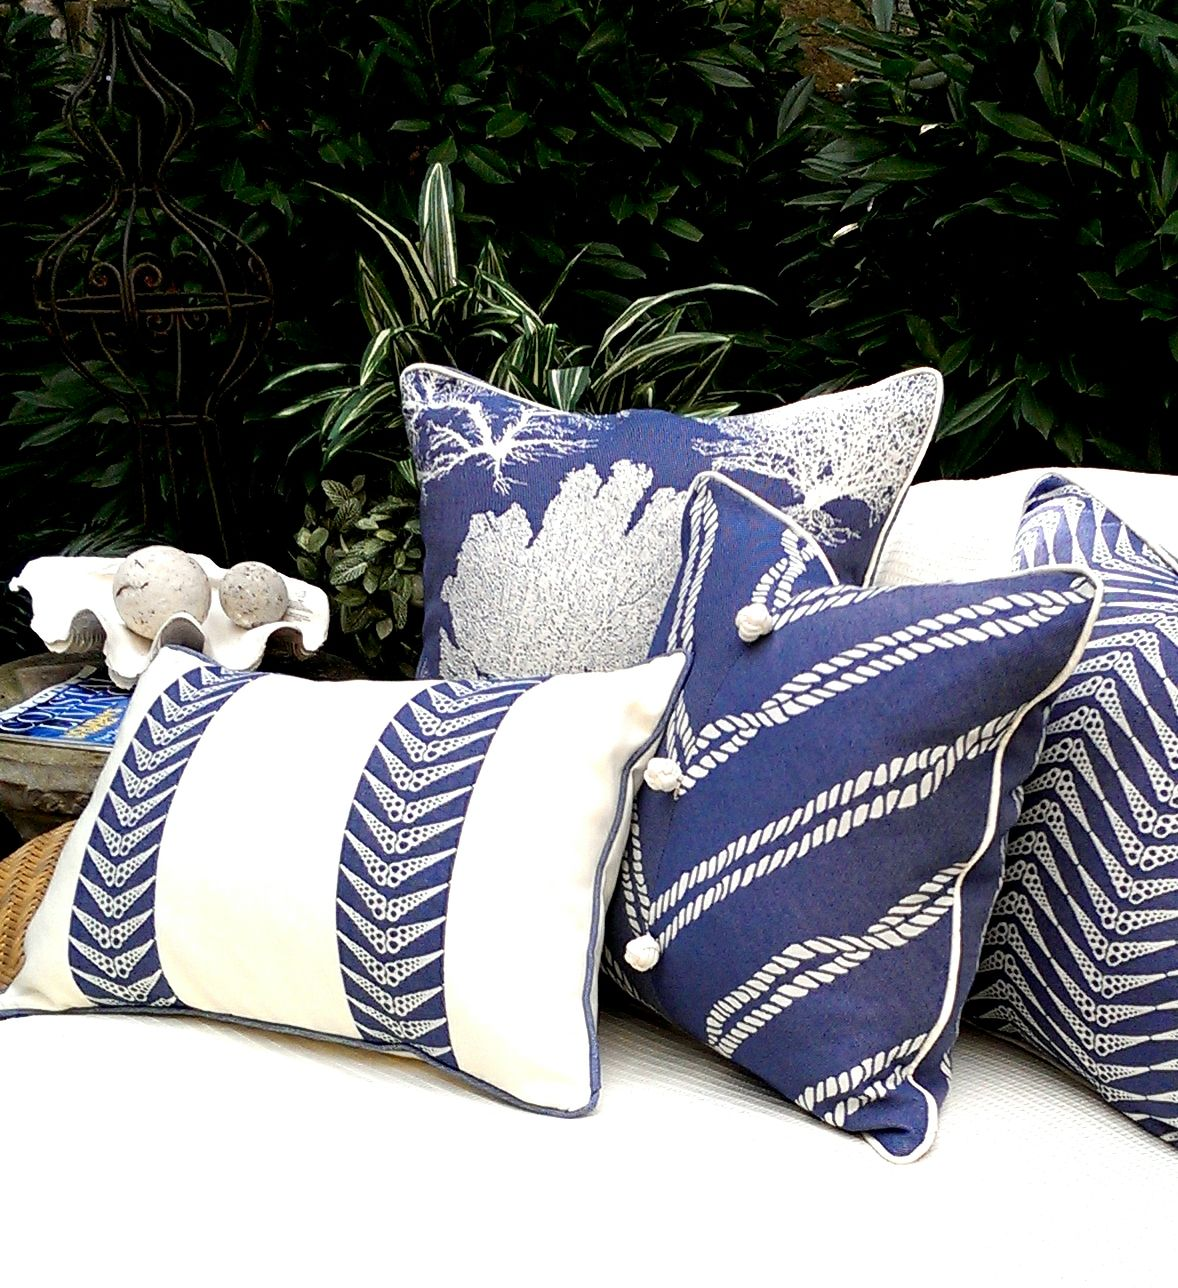 landscape cushion decorative free sea cover w pillowcase case pillows shipping throw summer home aliexpress get on covers wholesale beach sofa and pillow buy decoration com